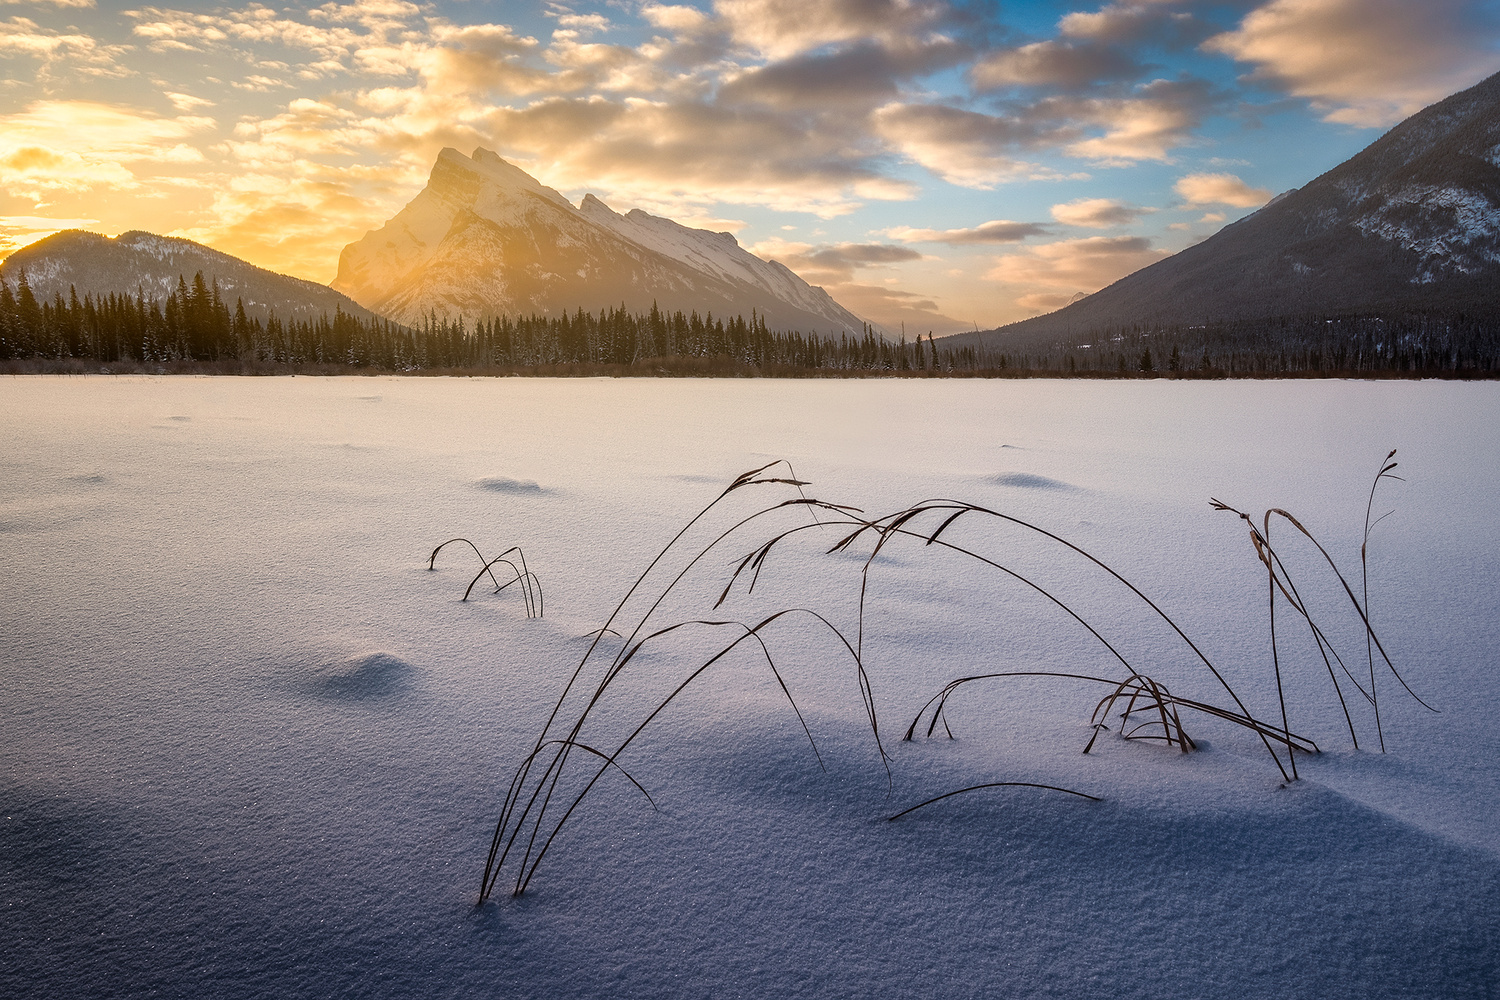 The frozen lake by Anthony Robin